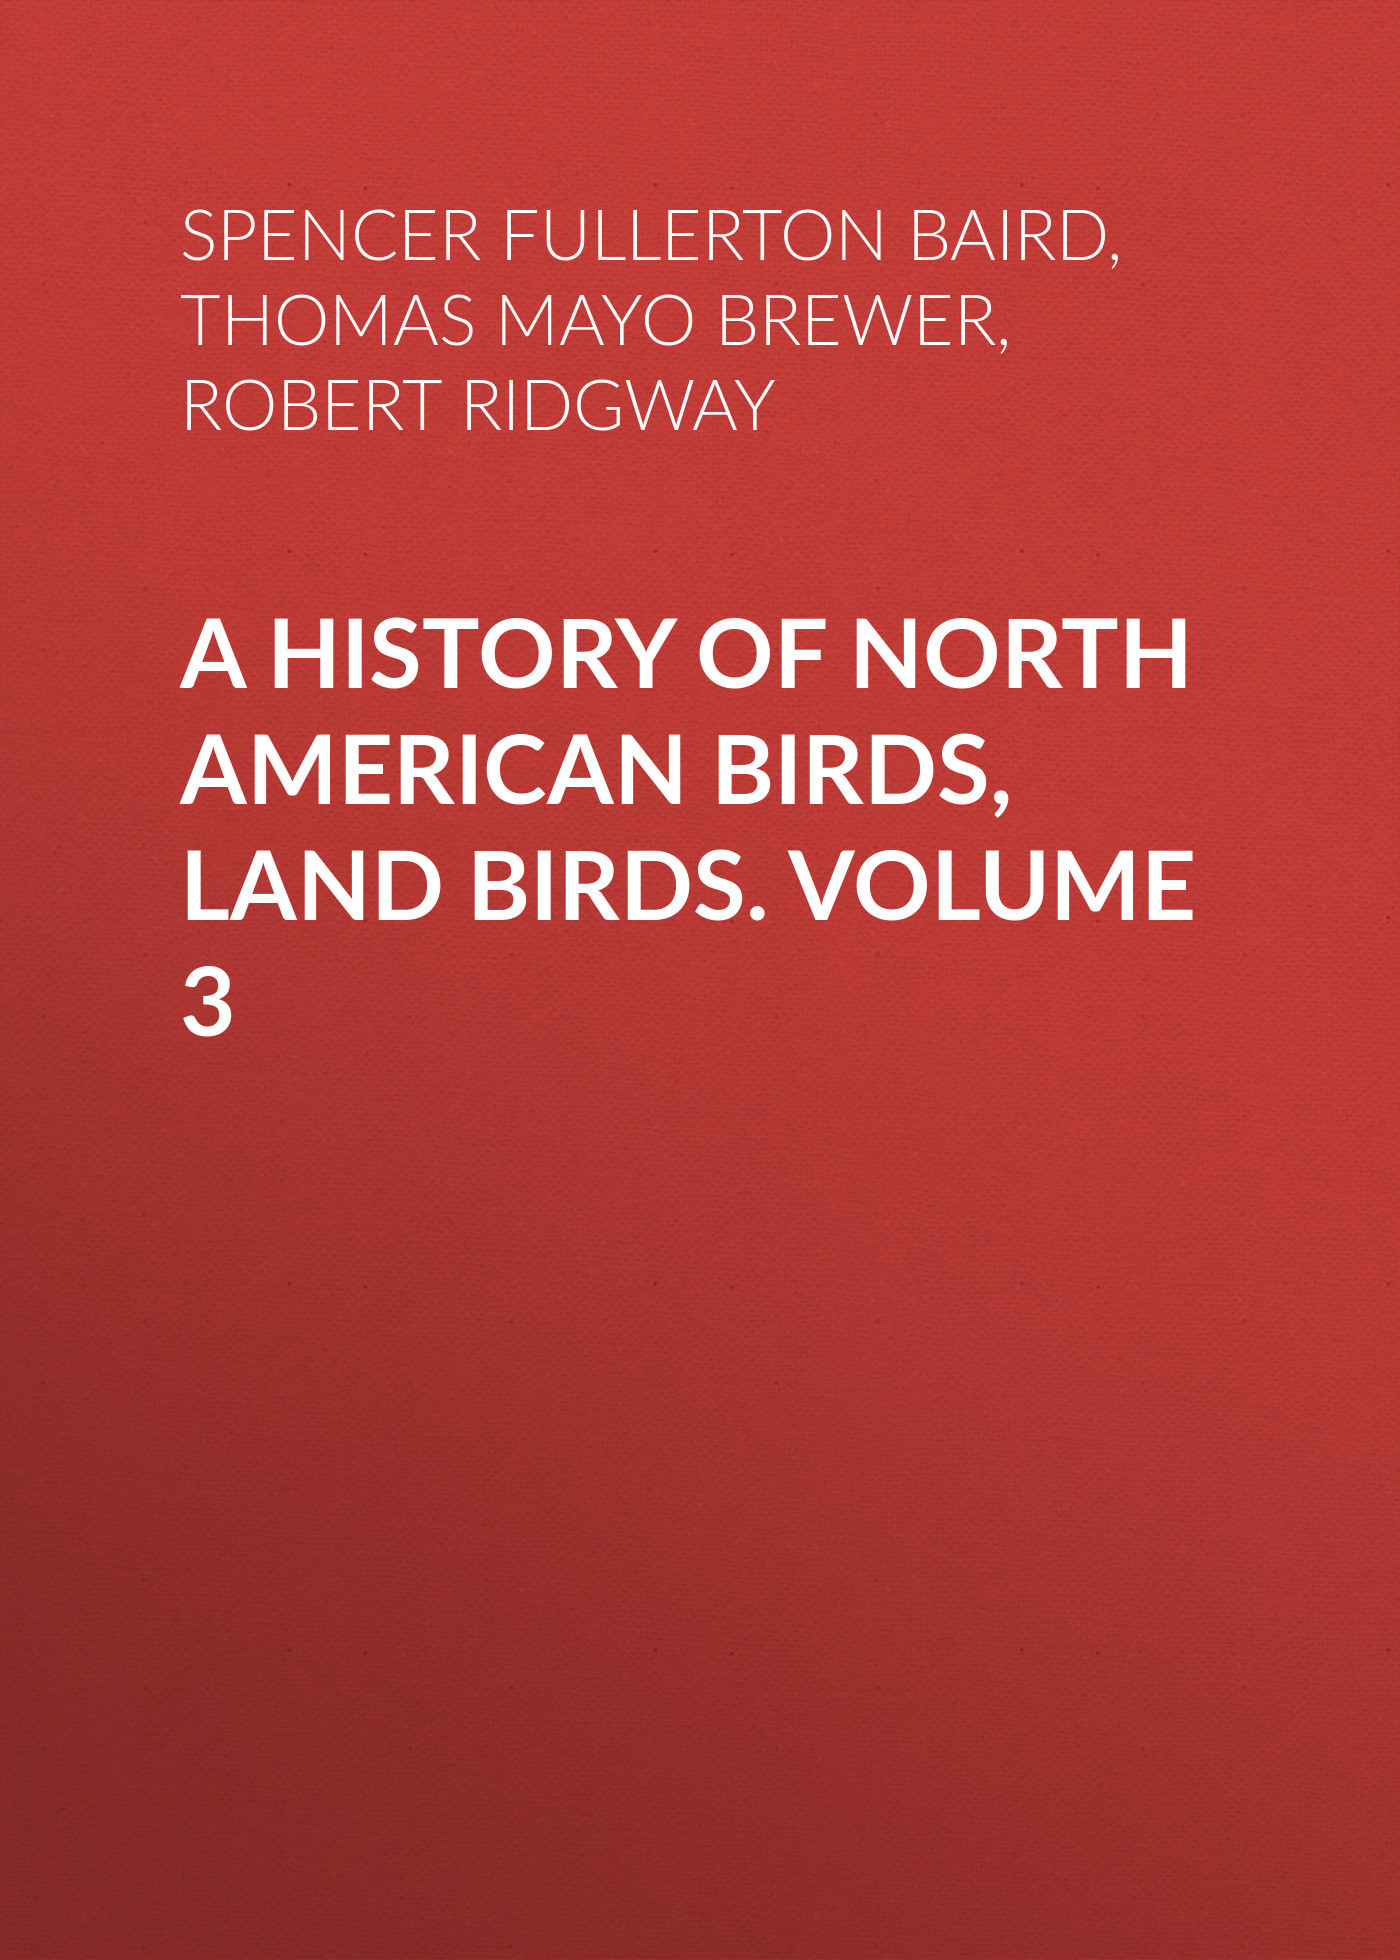 Robert Ridgway A History of North American Birds, Land Birds. Volume 3